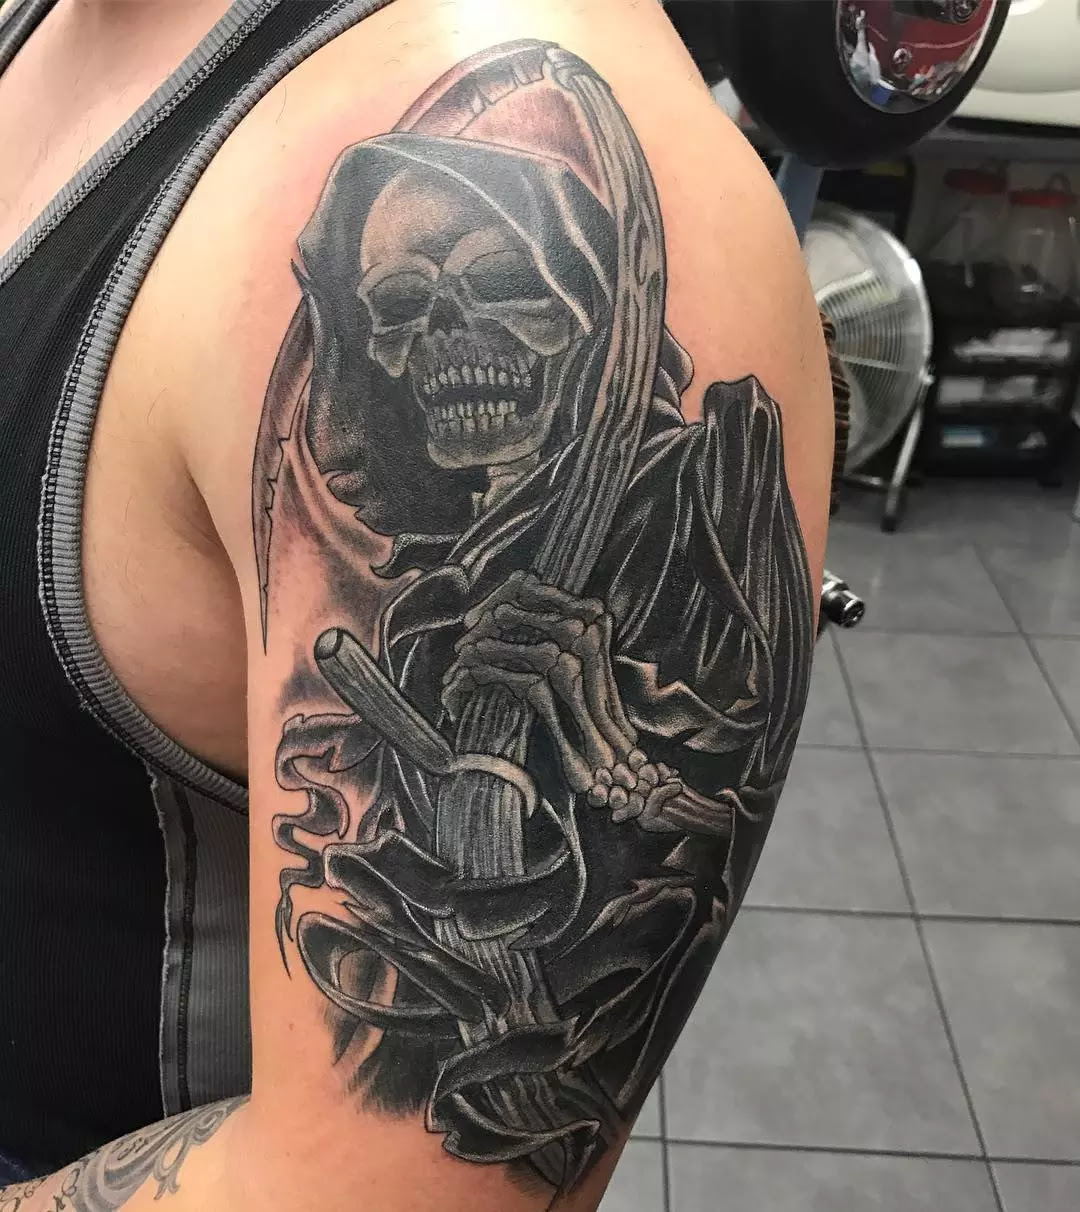 95+ Best Grim Reaper Tattoo Designs & Meanings - (2019)